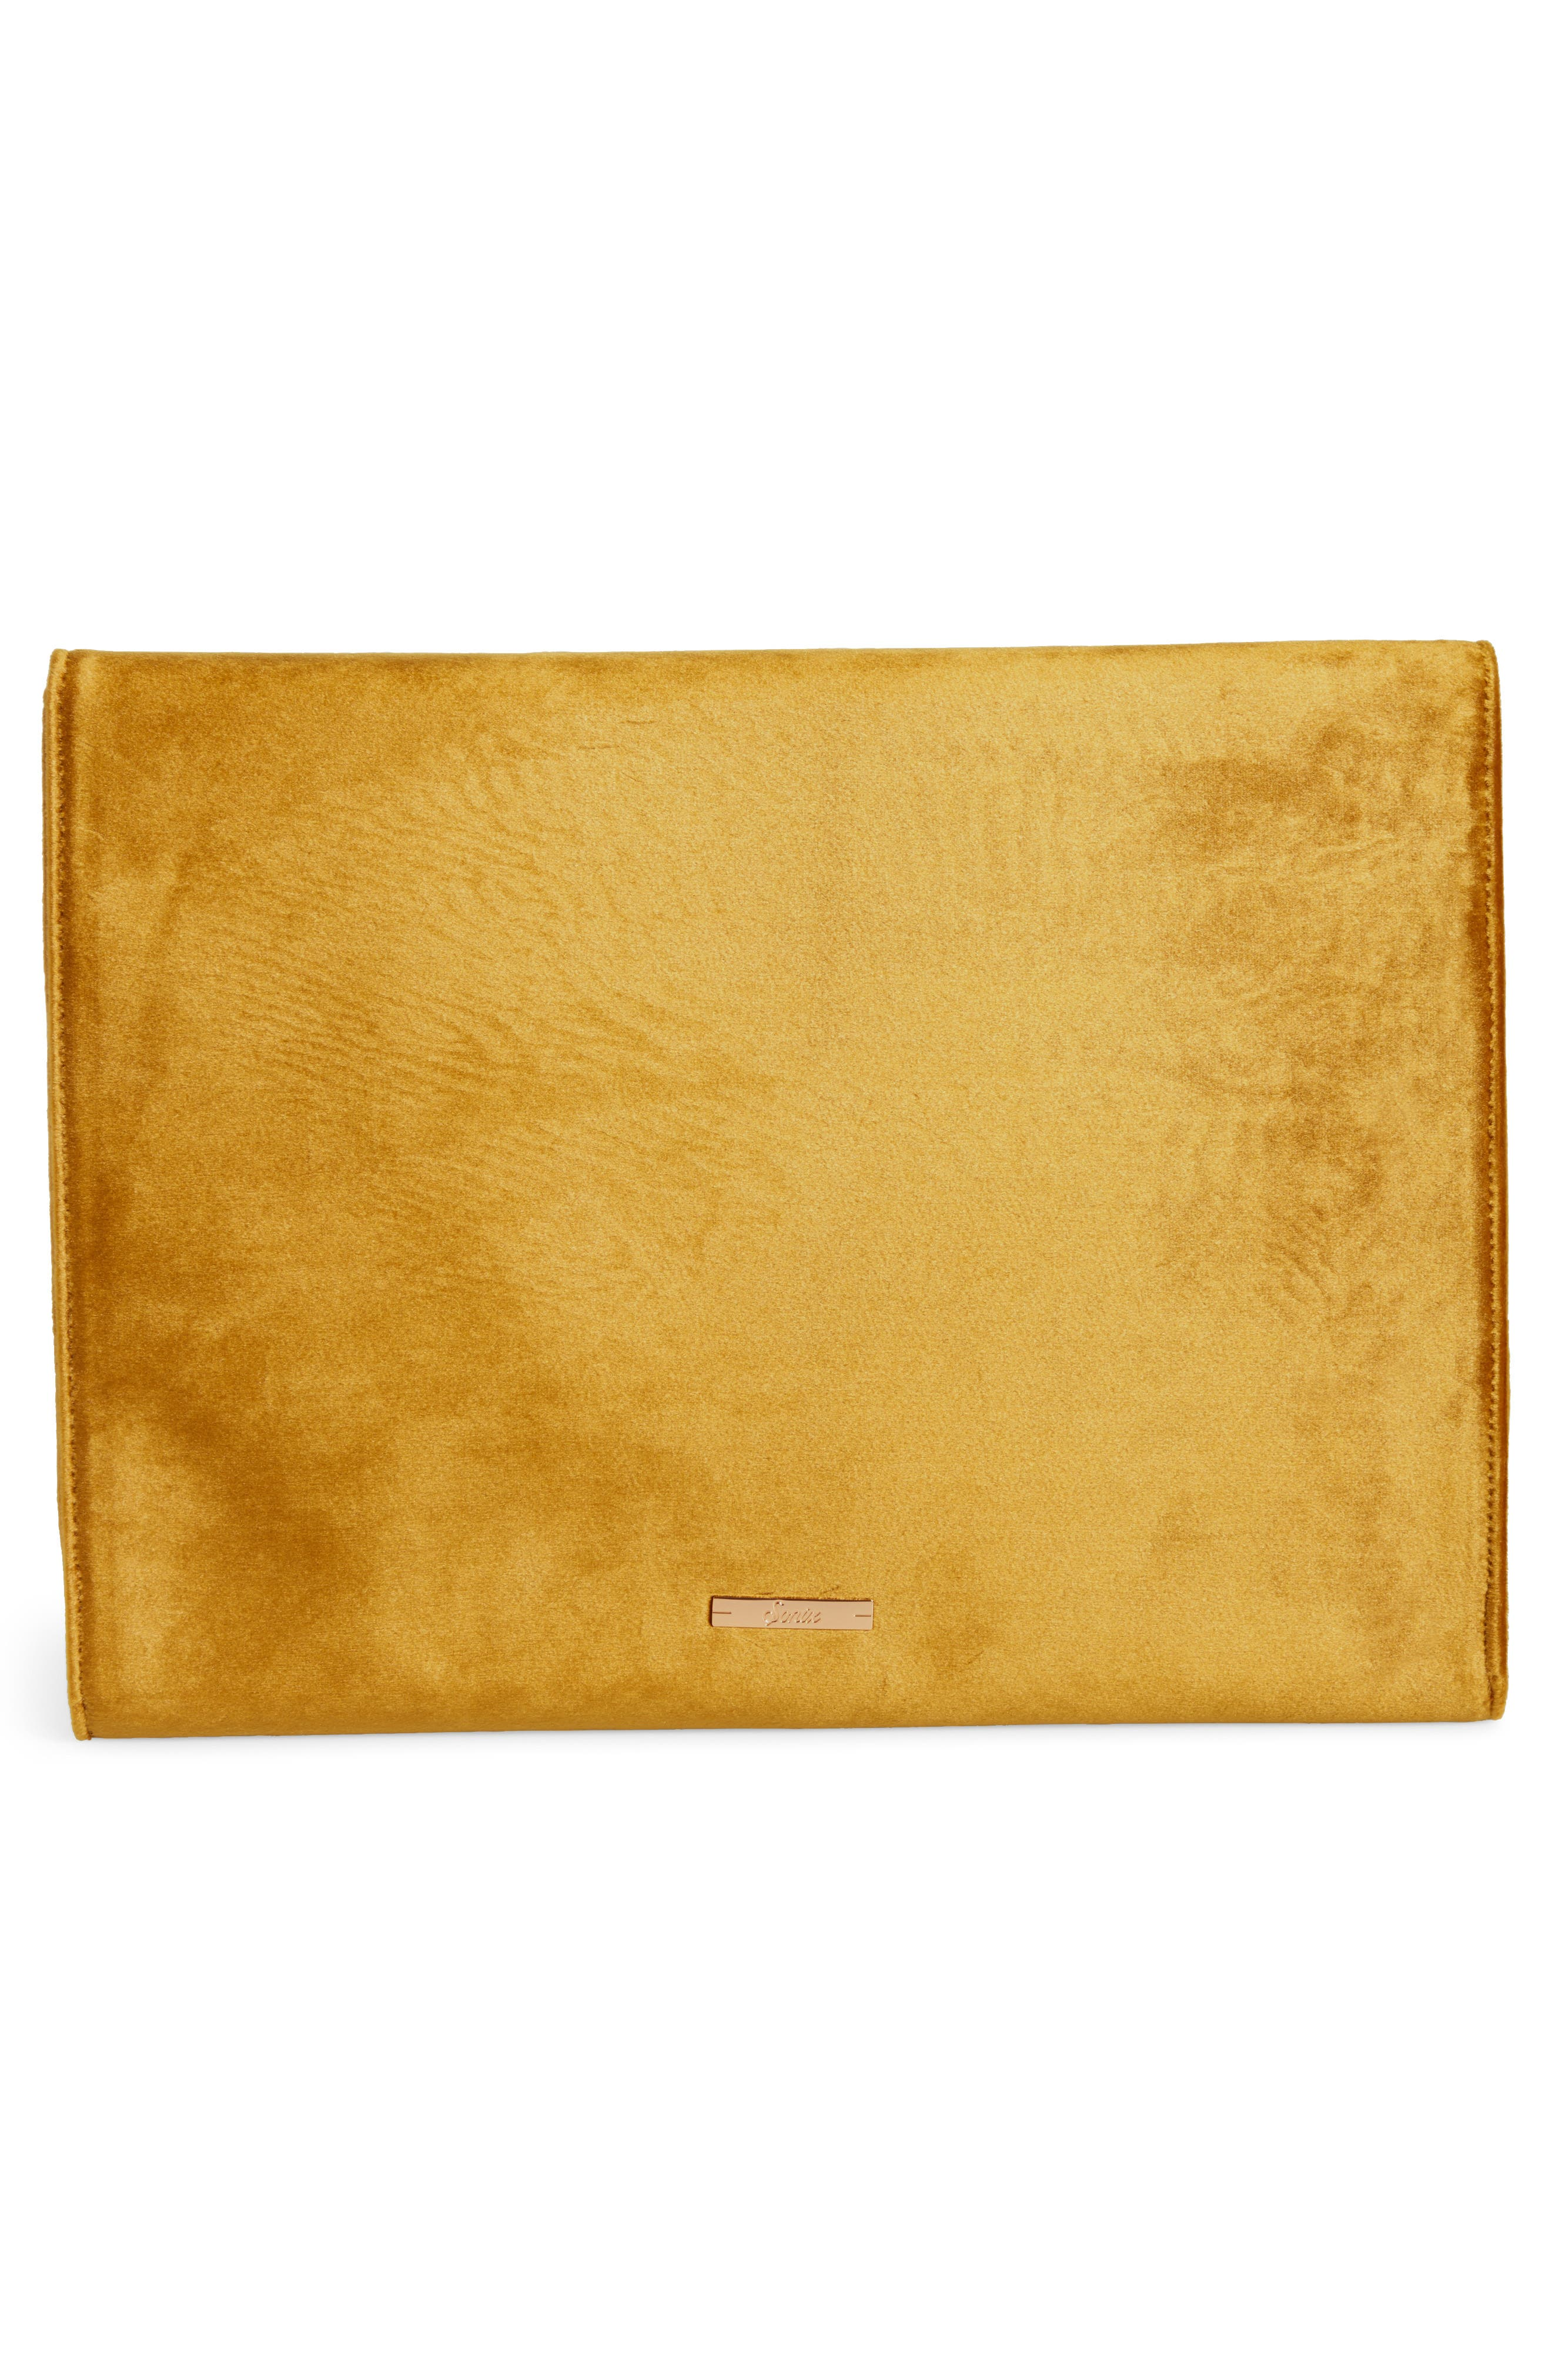 Canary Velvet Laptop Clutch,                             Alternate thumbnail 4, color,                             710